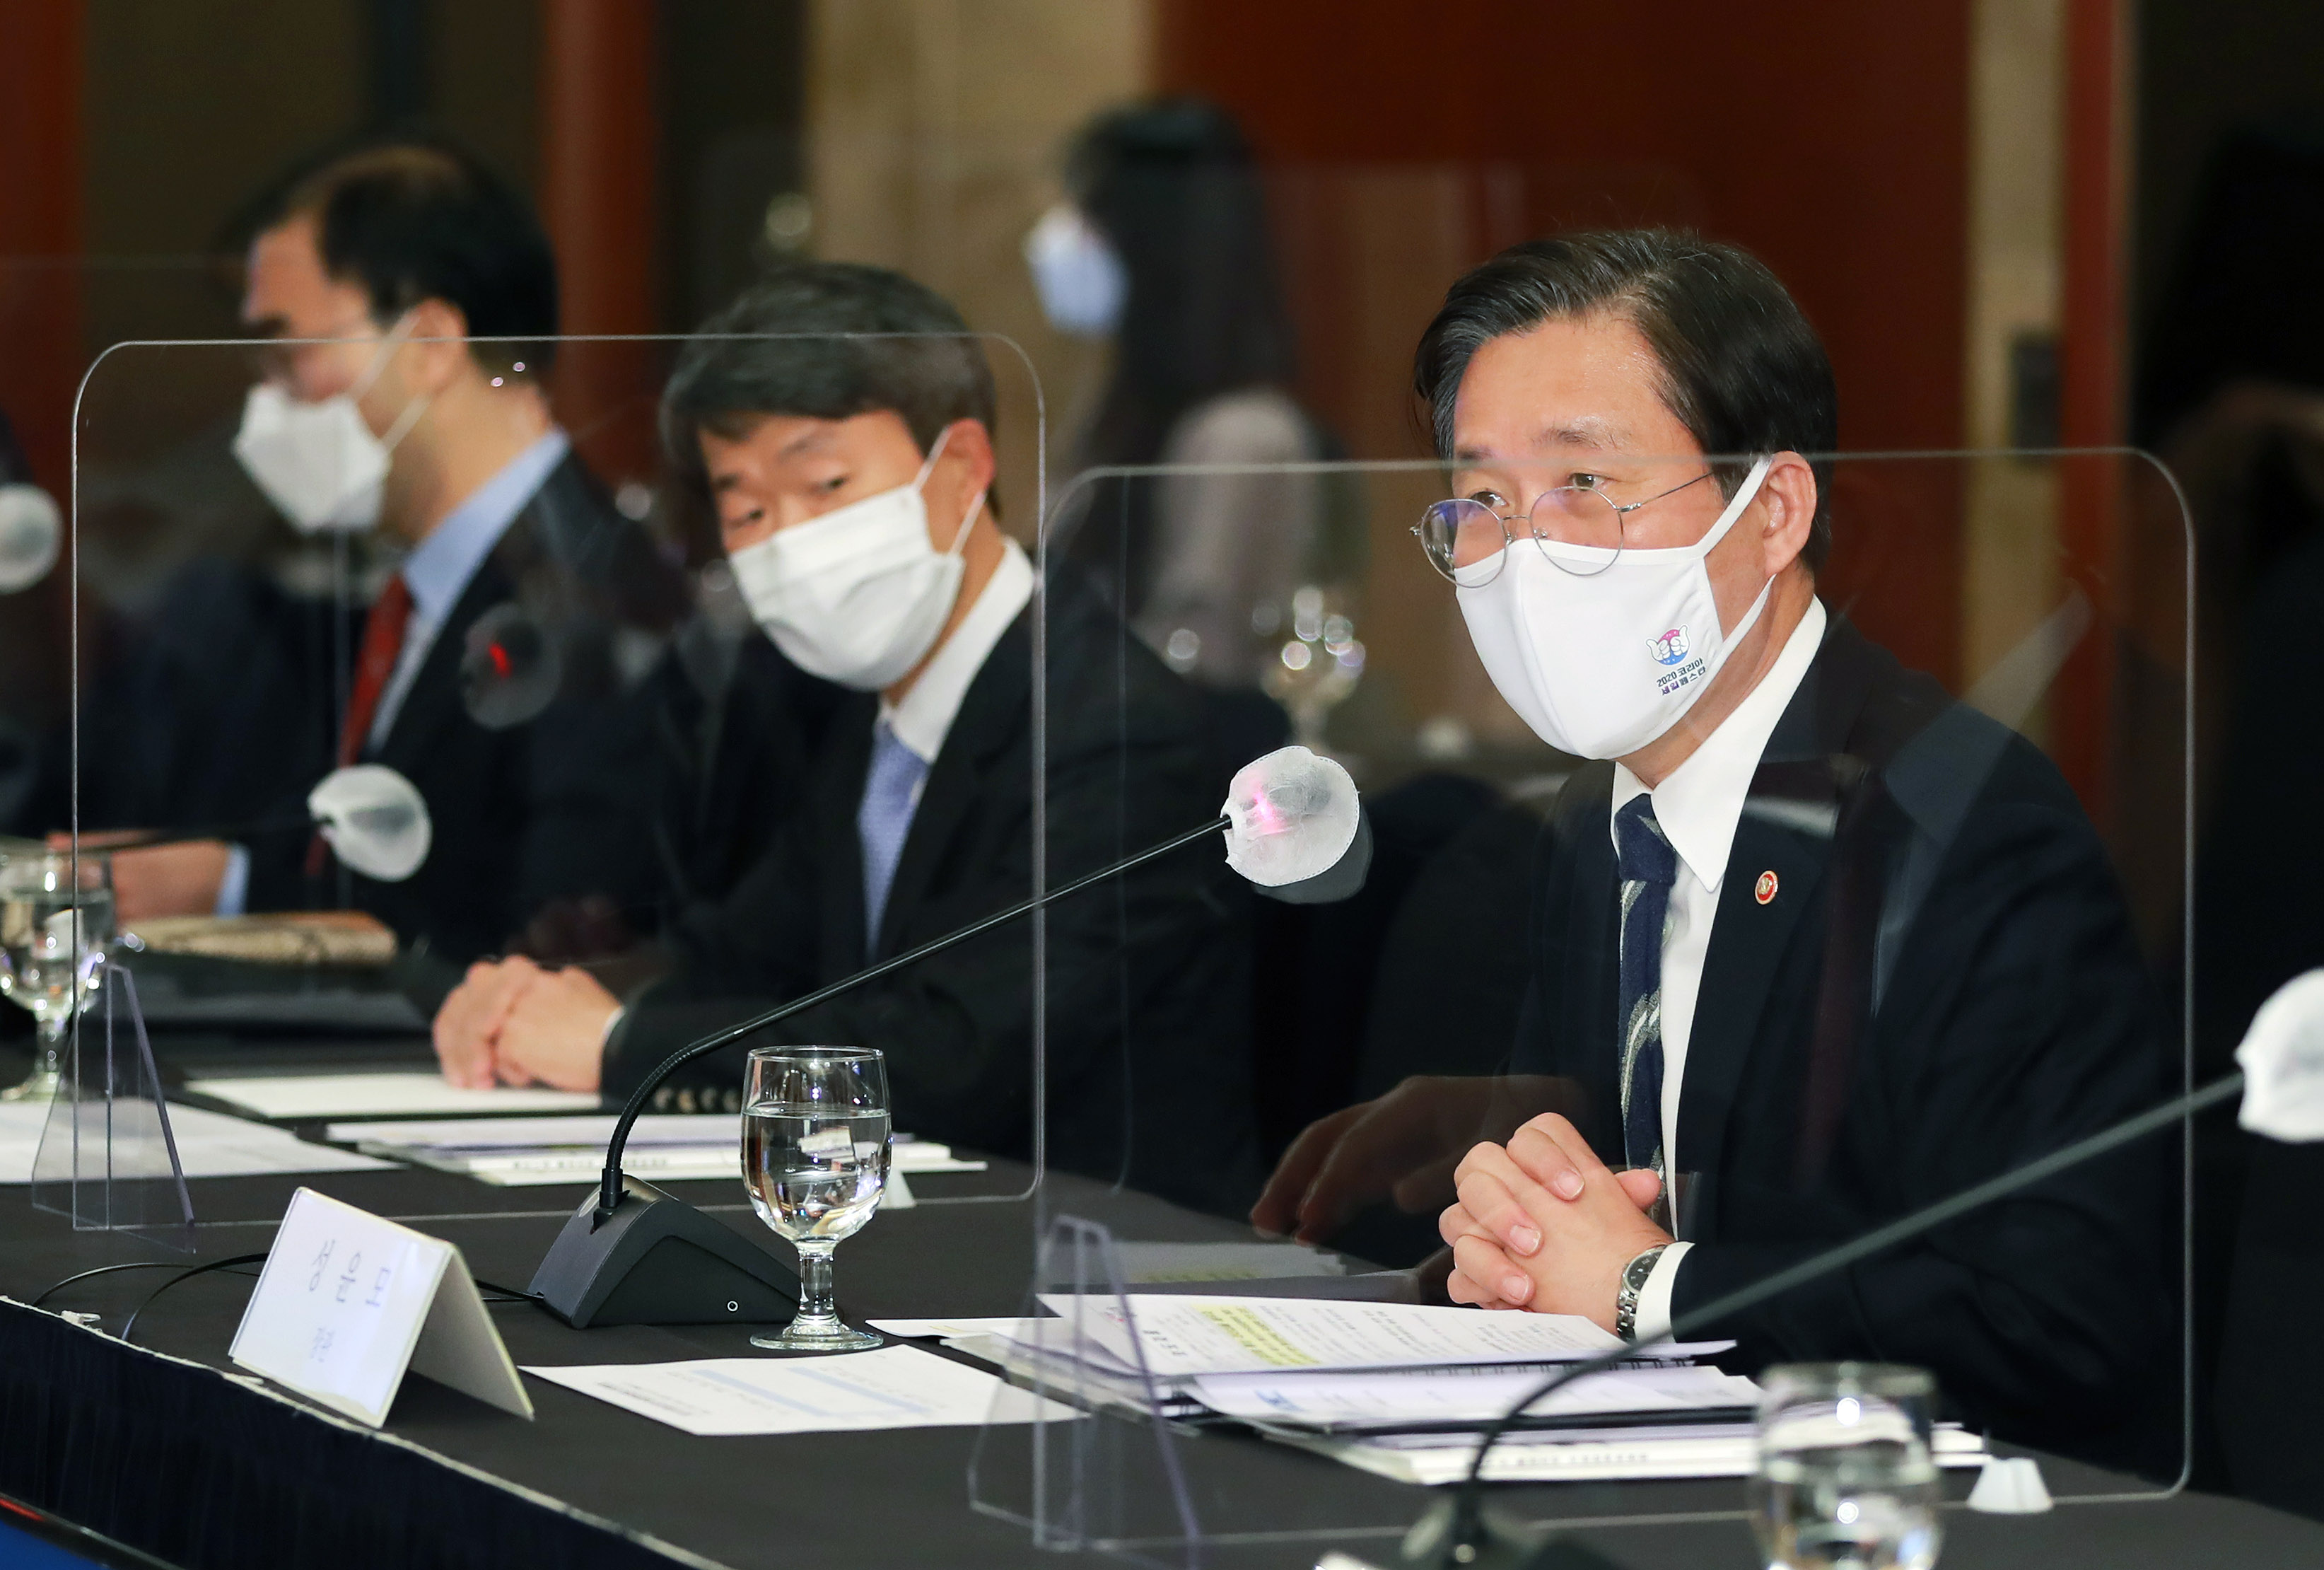 Minister Sung holds committee meeting to discuss post-corona trade policy